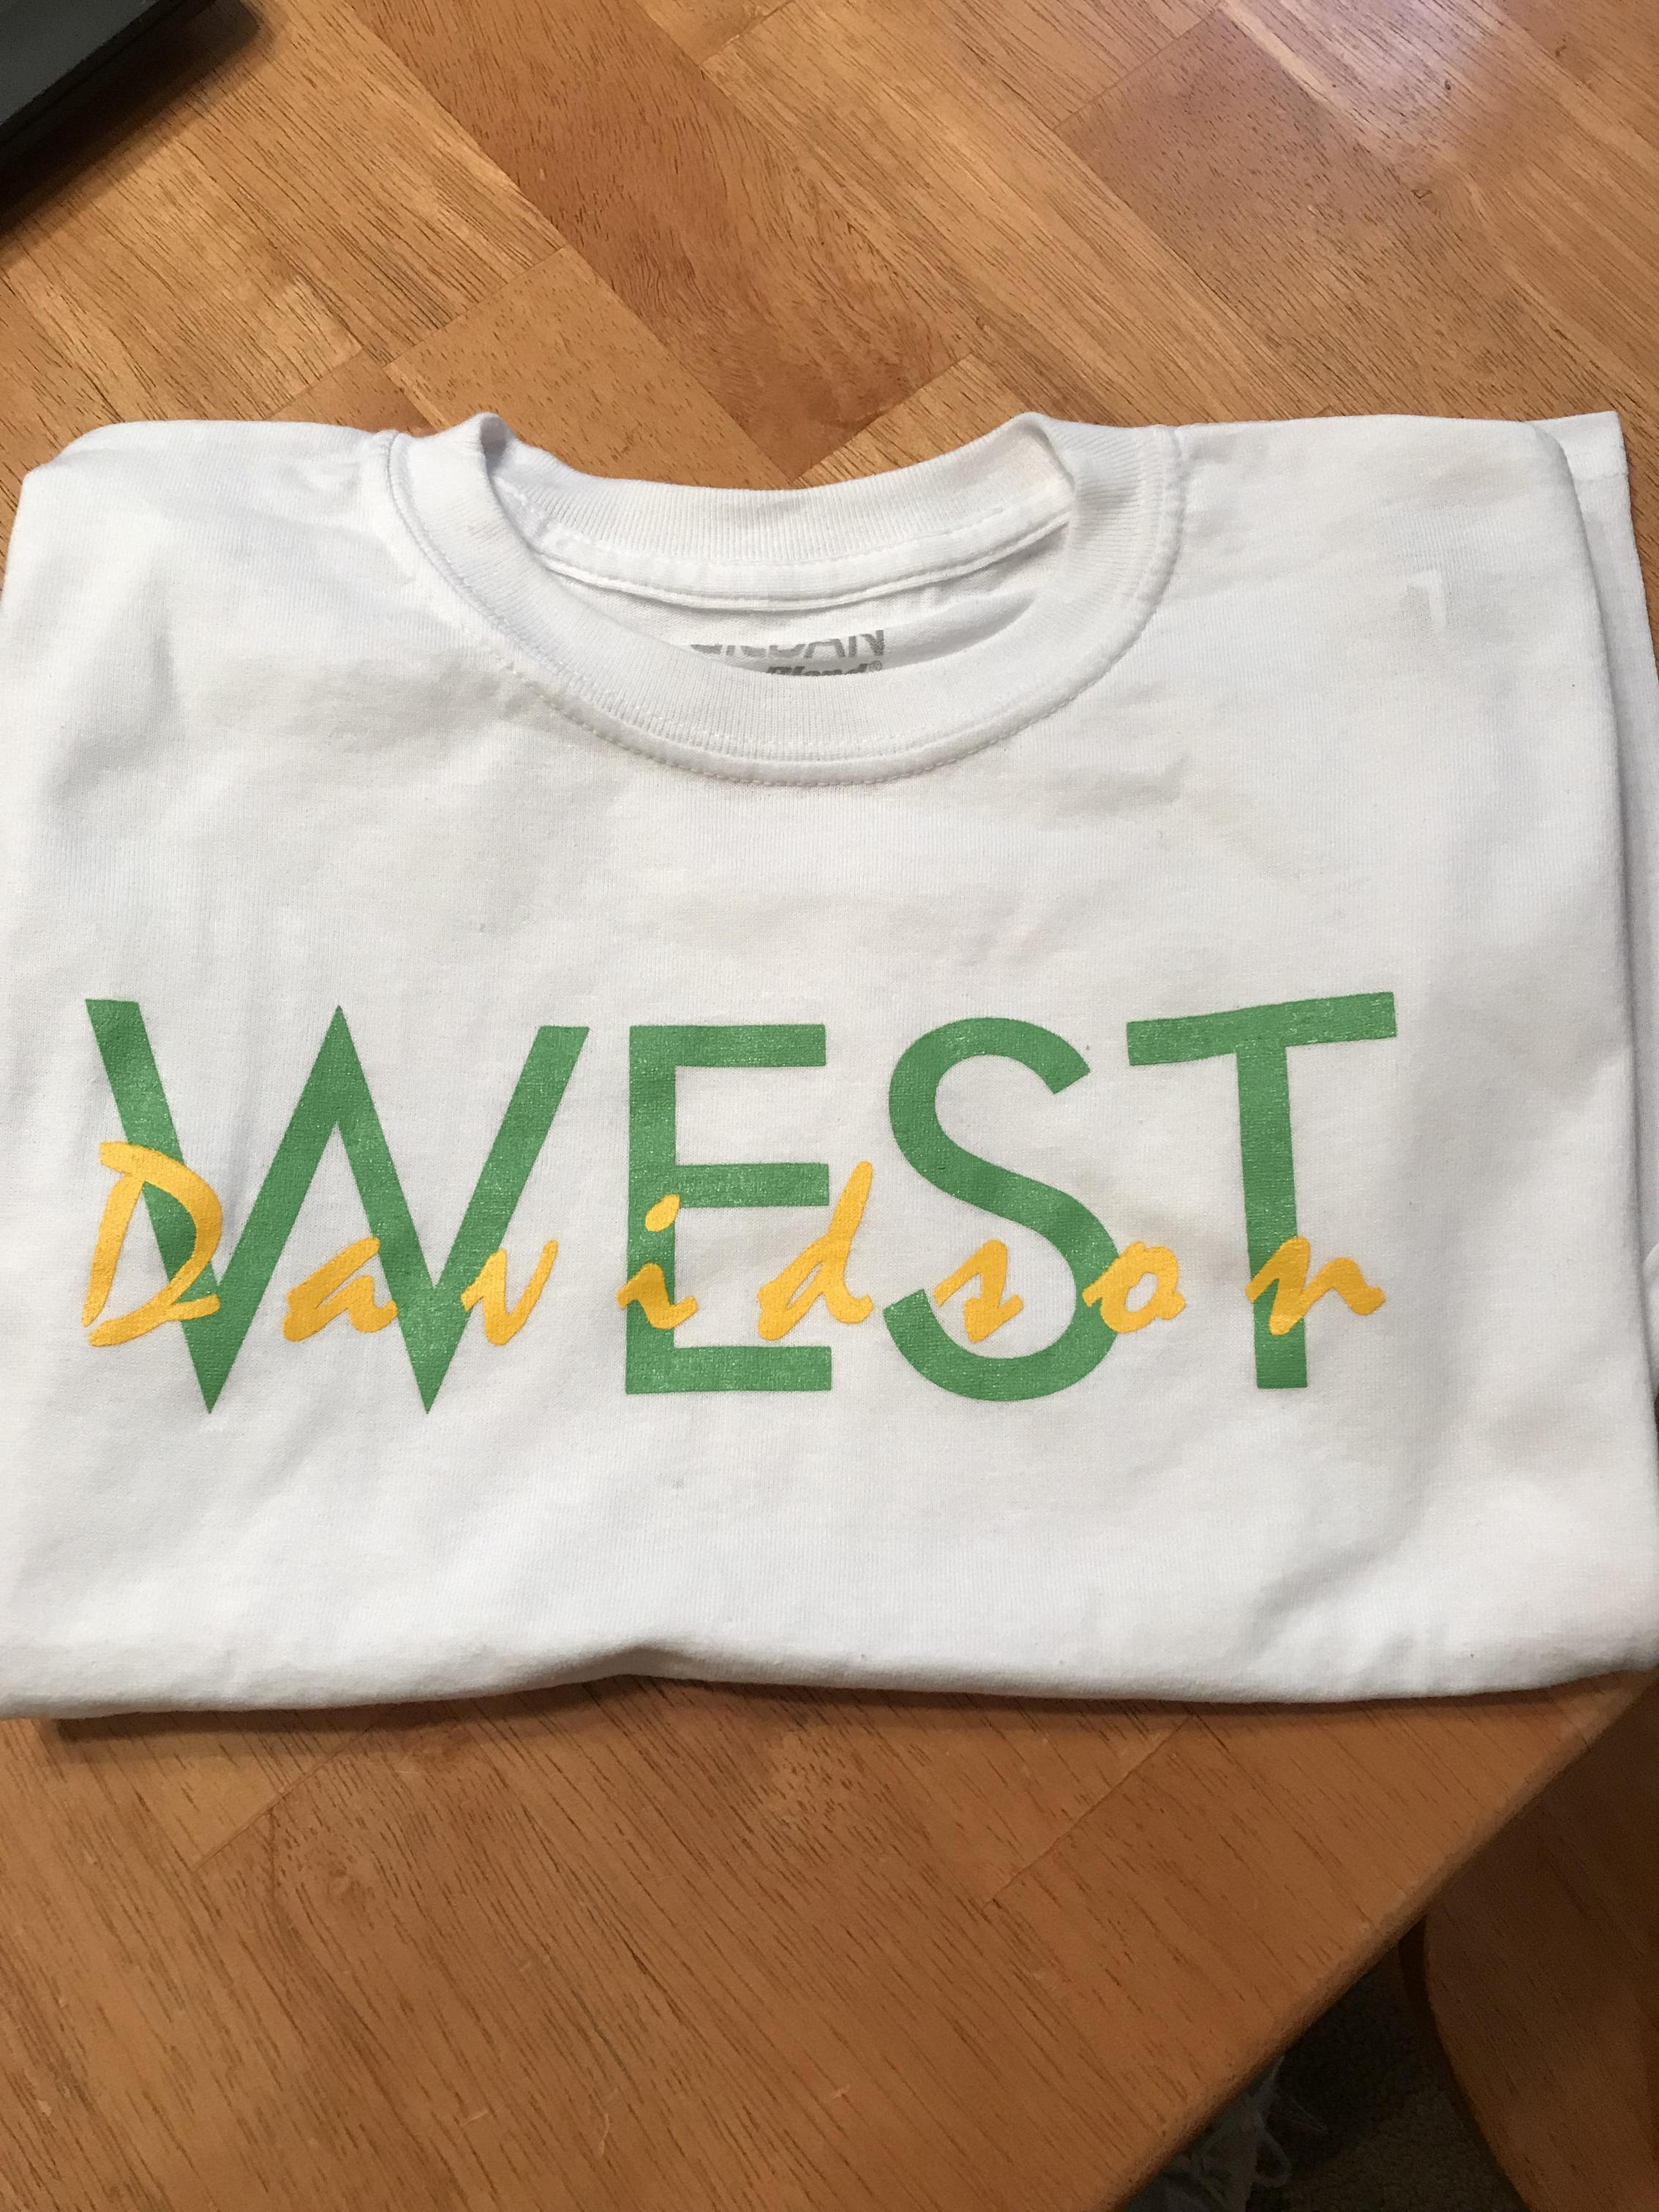 West tshirt